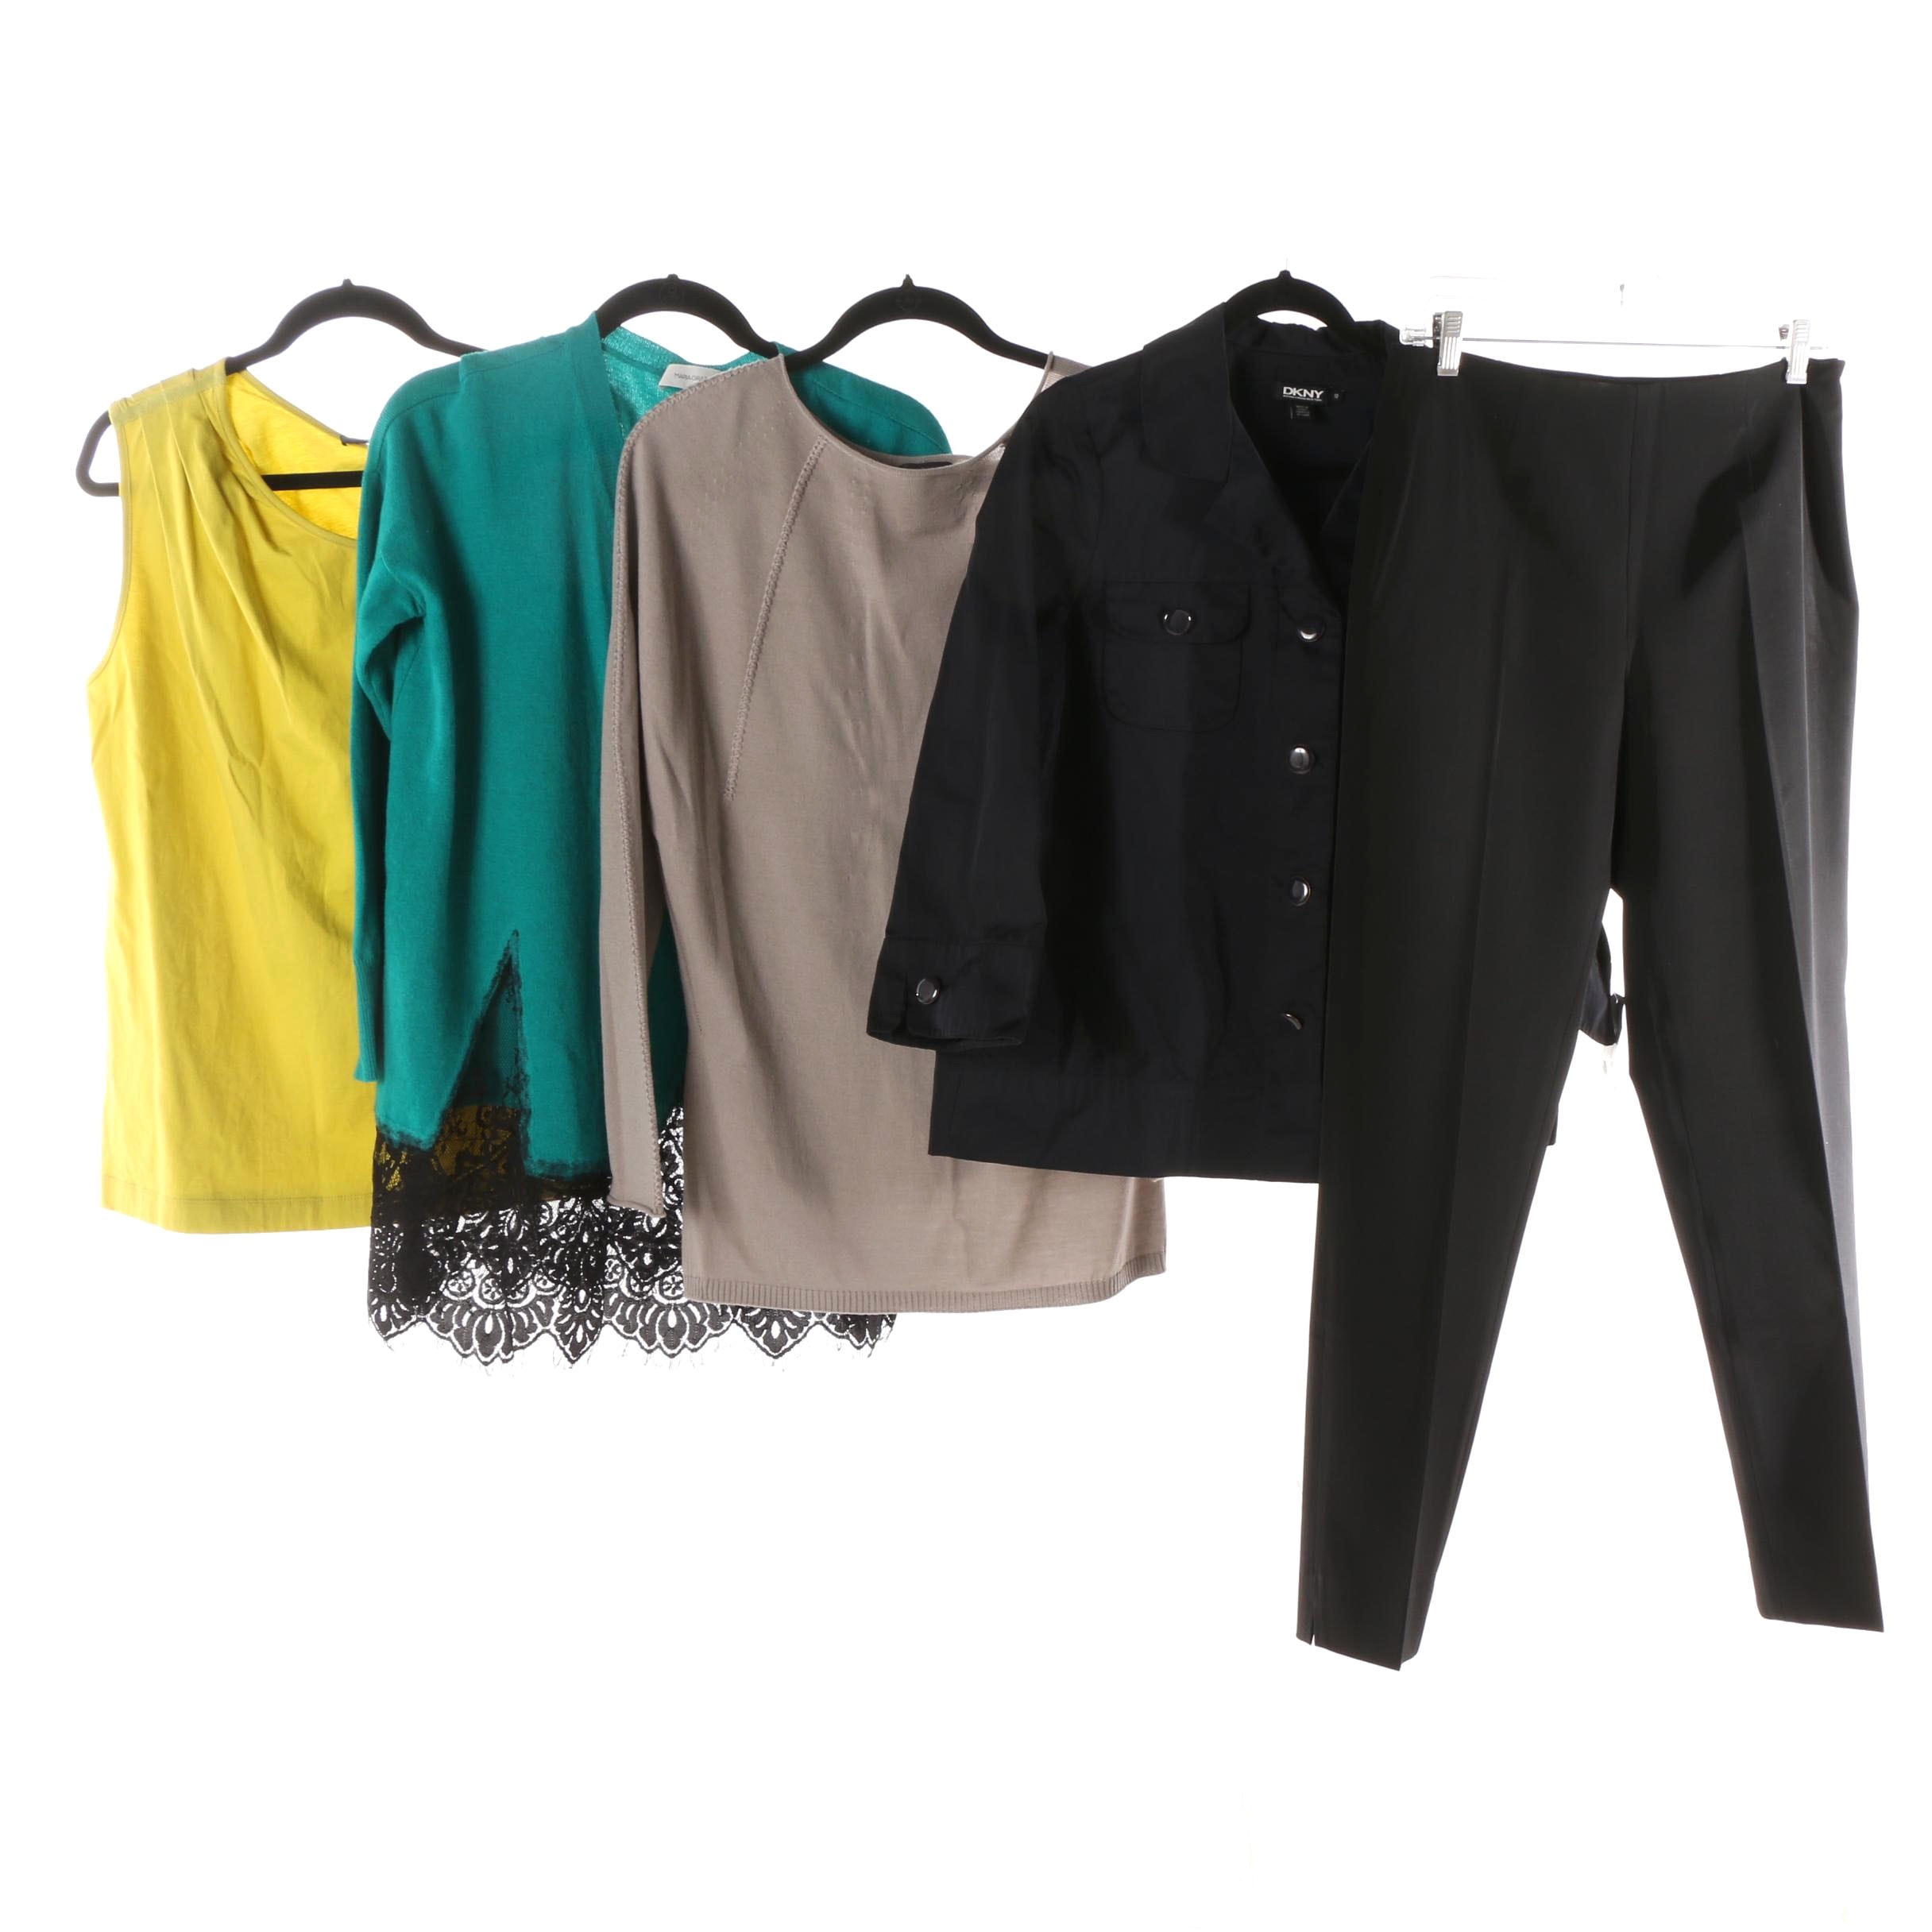 Women's Pants and Tops including Piazza Sempione, Maria Grazia Severi, and DKNY